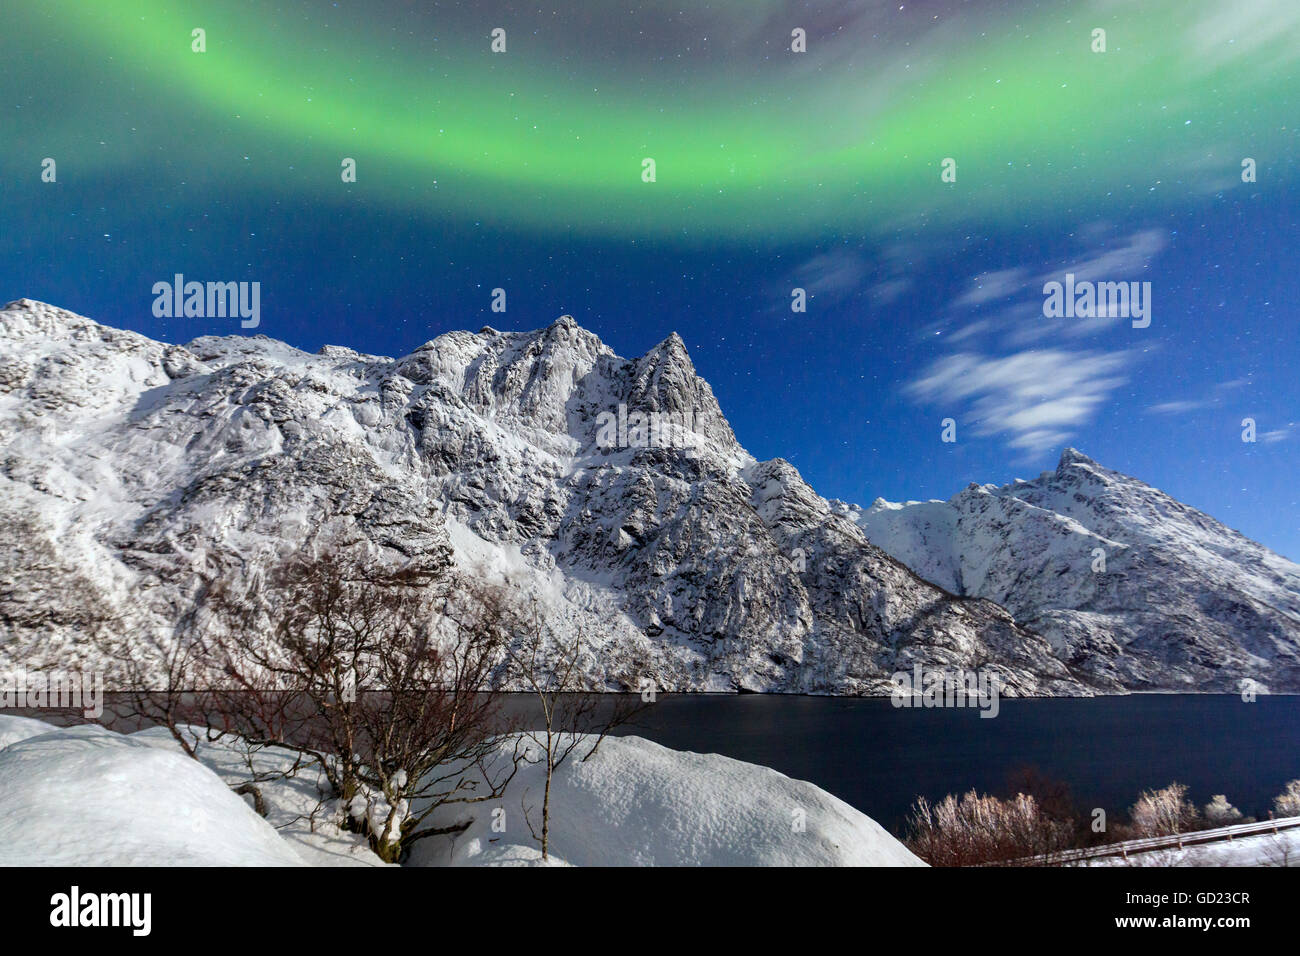 Northern Lights illuminate the snowy peaks and the blue sky during a starry night, Budalen, Svolvaer, Lofoten Islands, - Stock Image